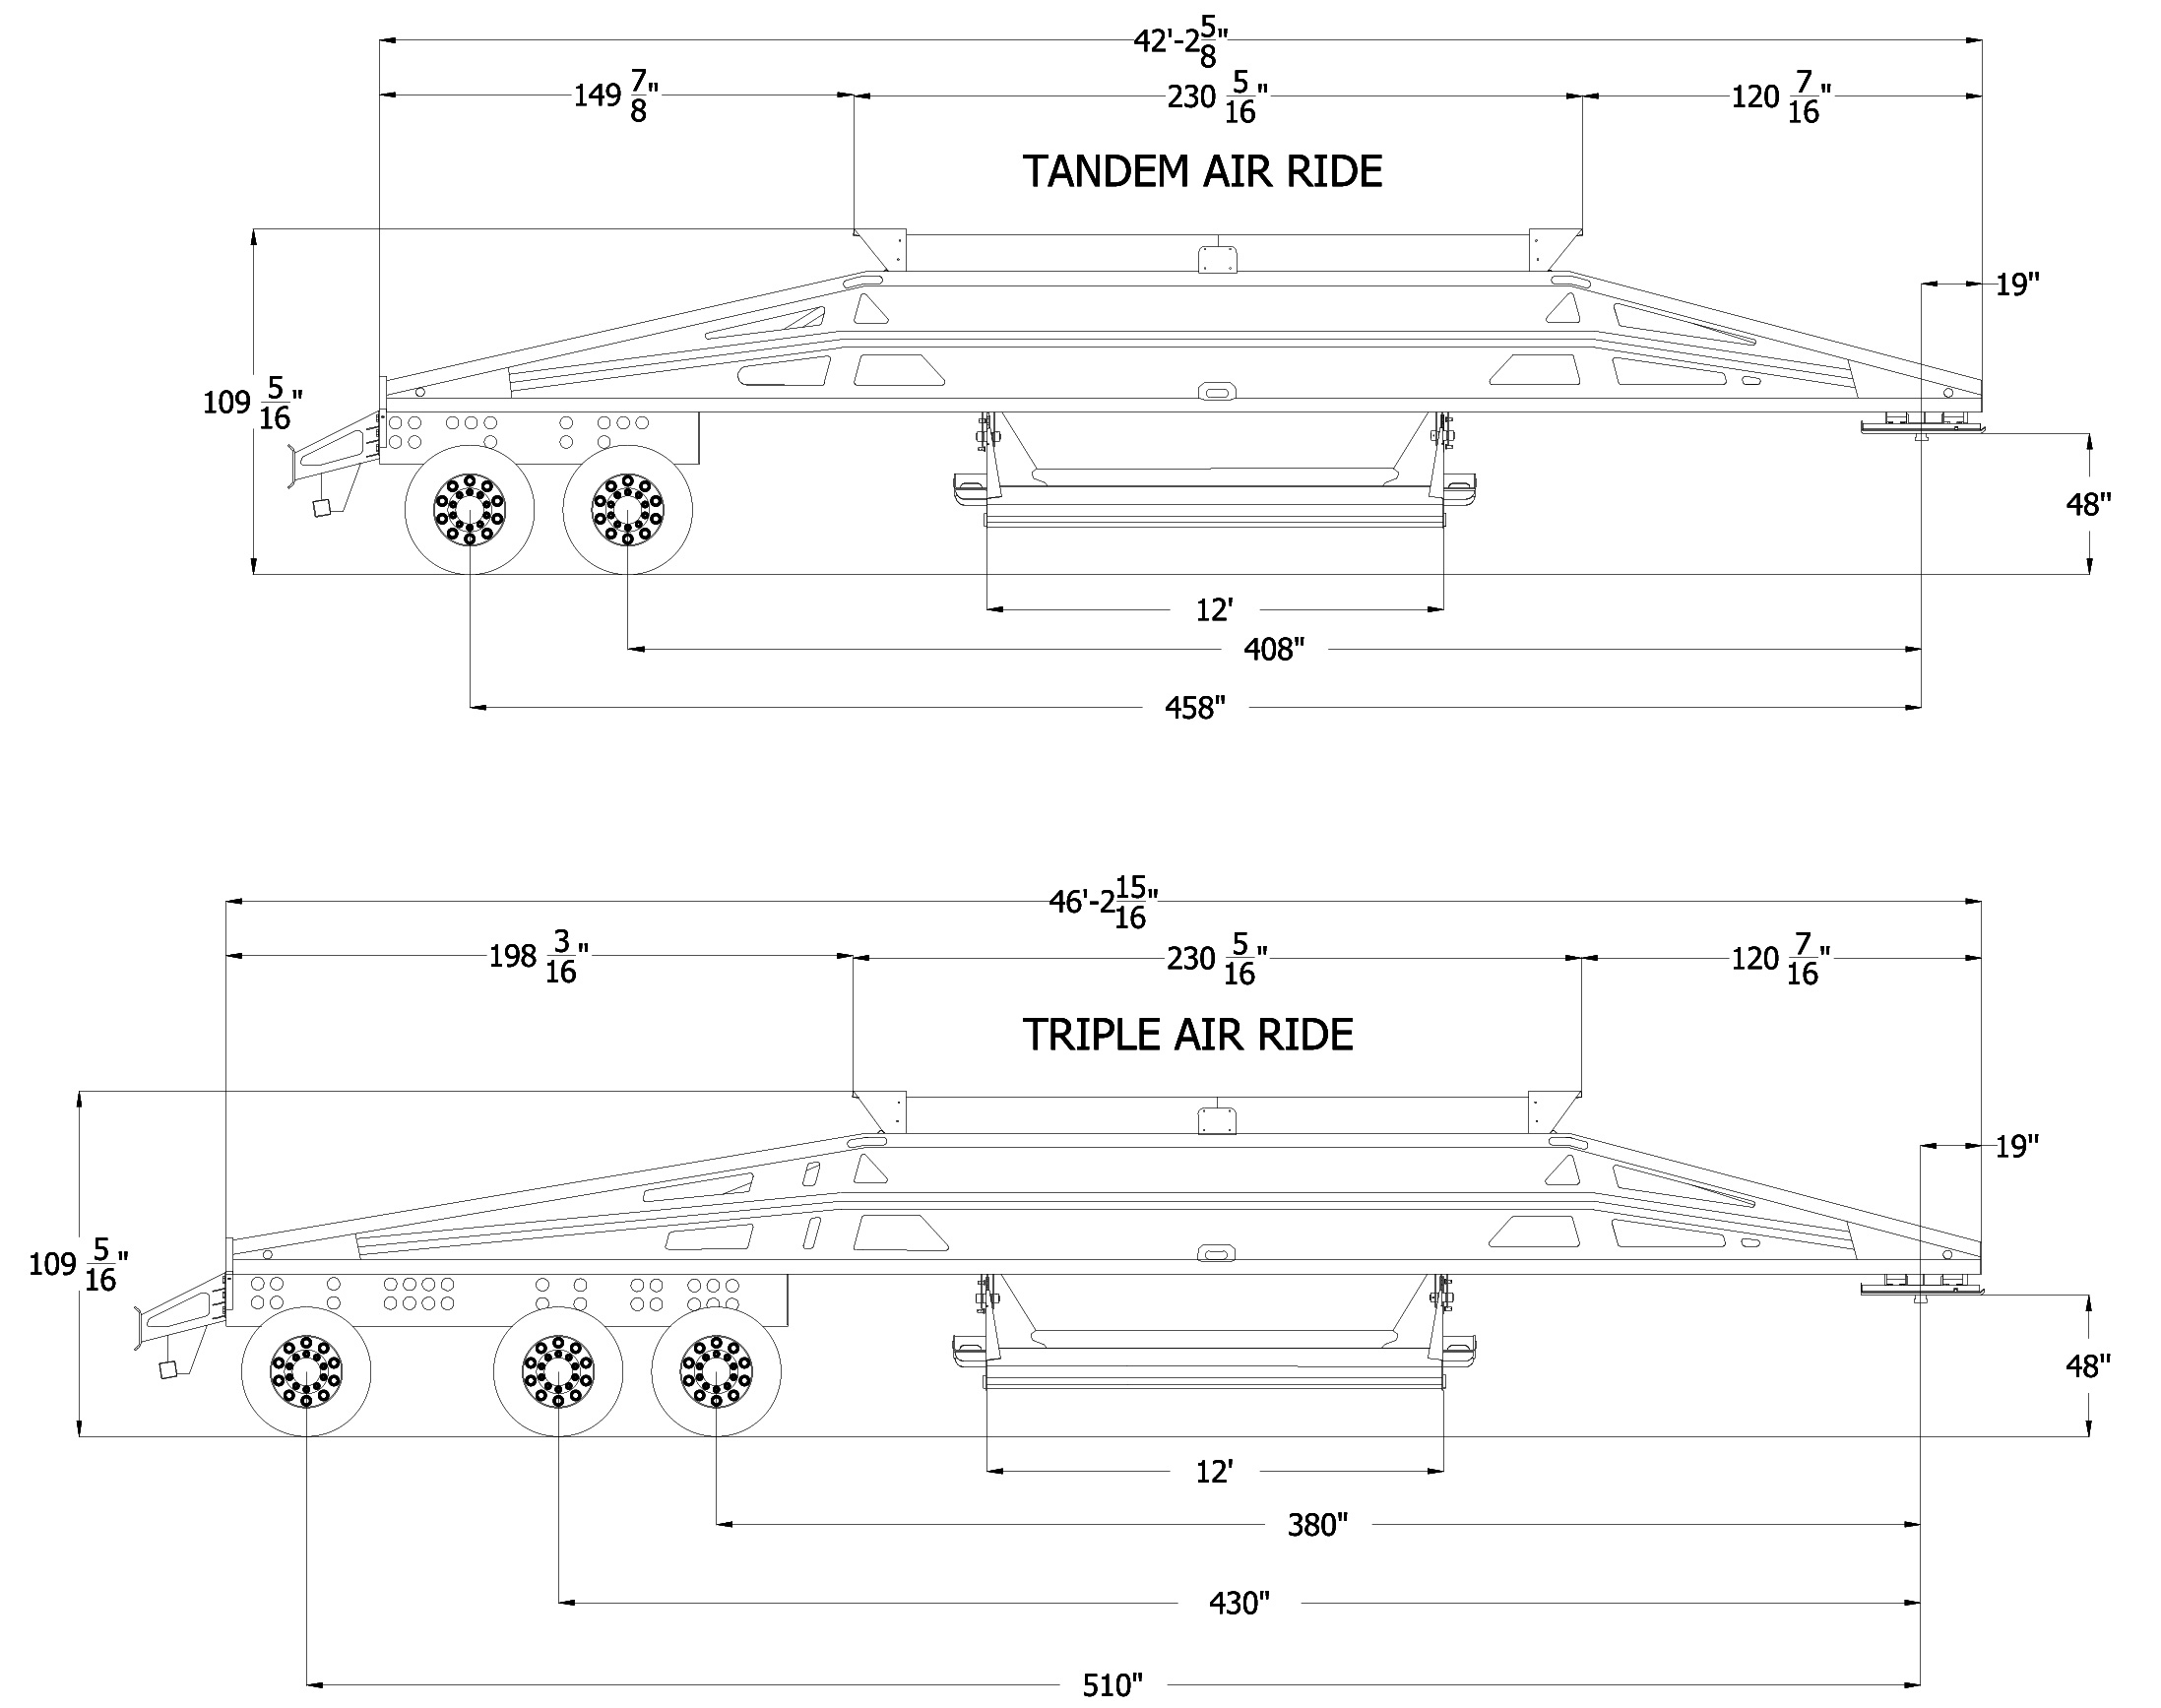 Itm Trailer Manufacturing Equipment - Belly Dump Trailer Wiring Diagram